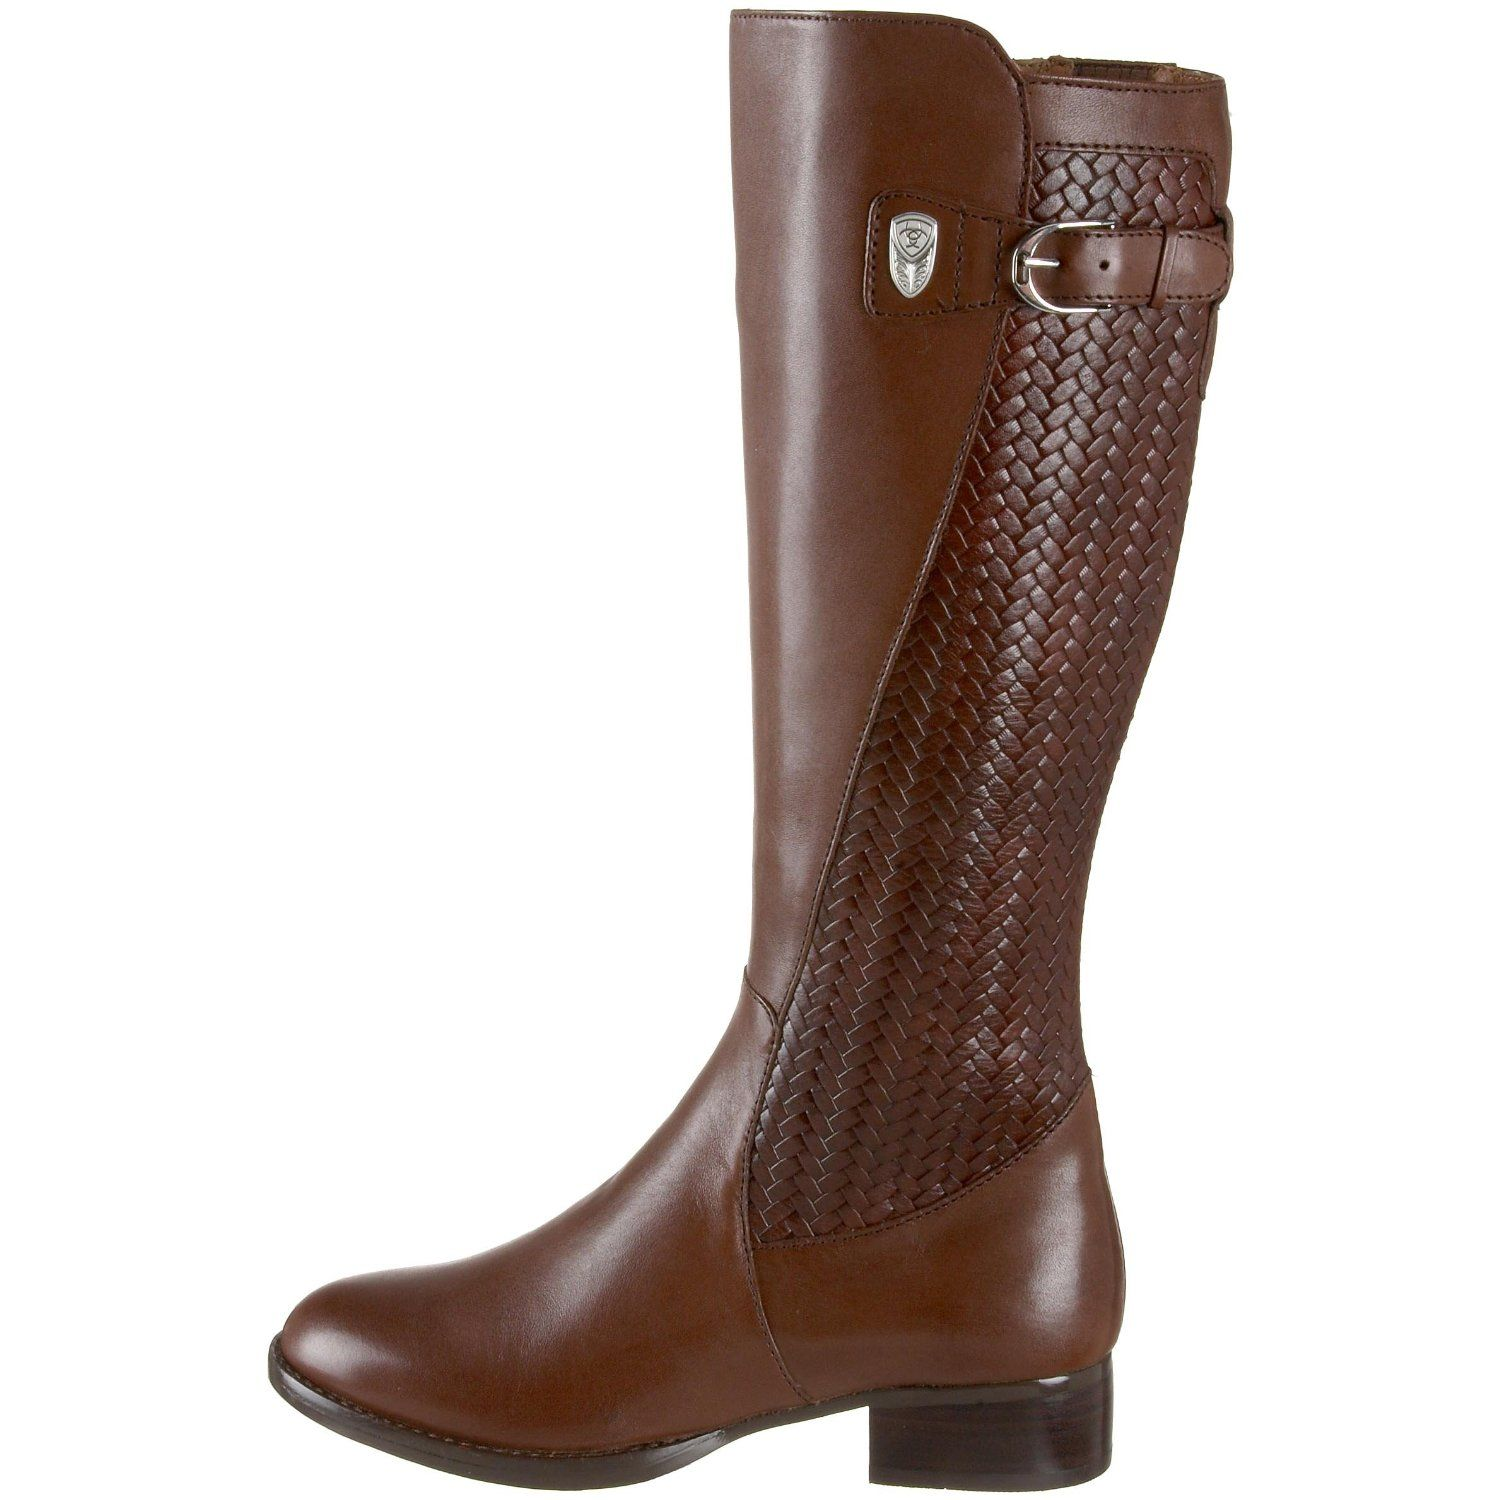 horse riding boots women | Sizing Information for Ariat Plymouth ...